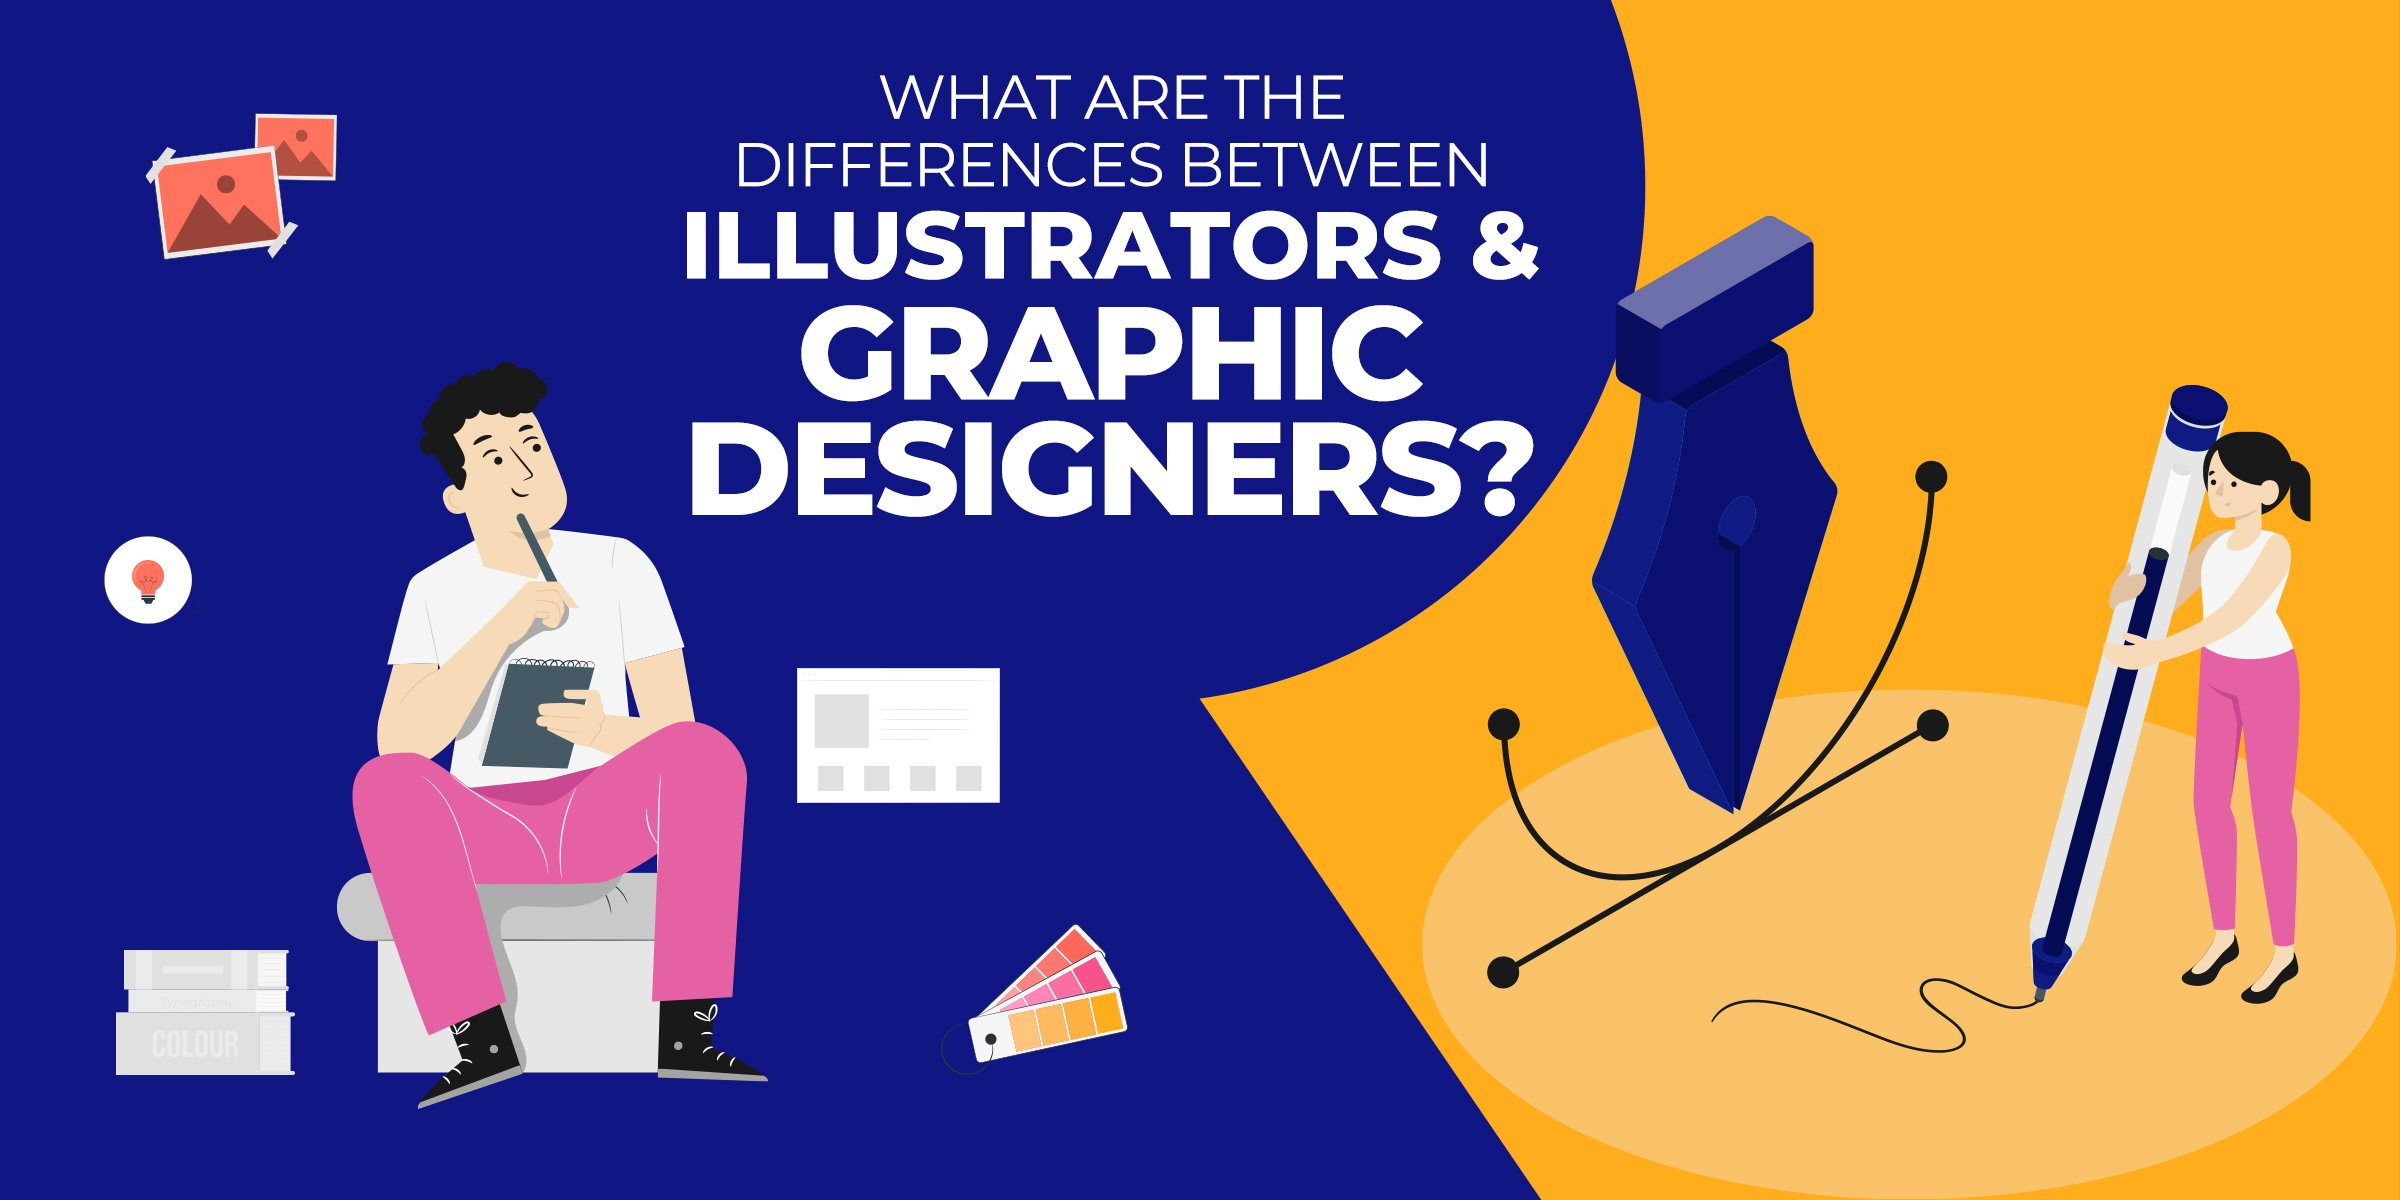 What are the differences between illustrators and graphic designers?